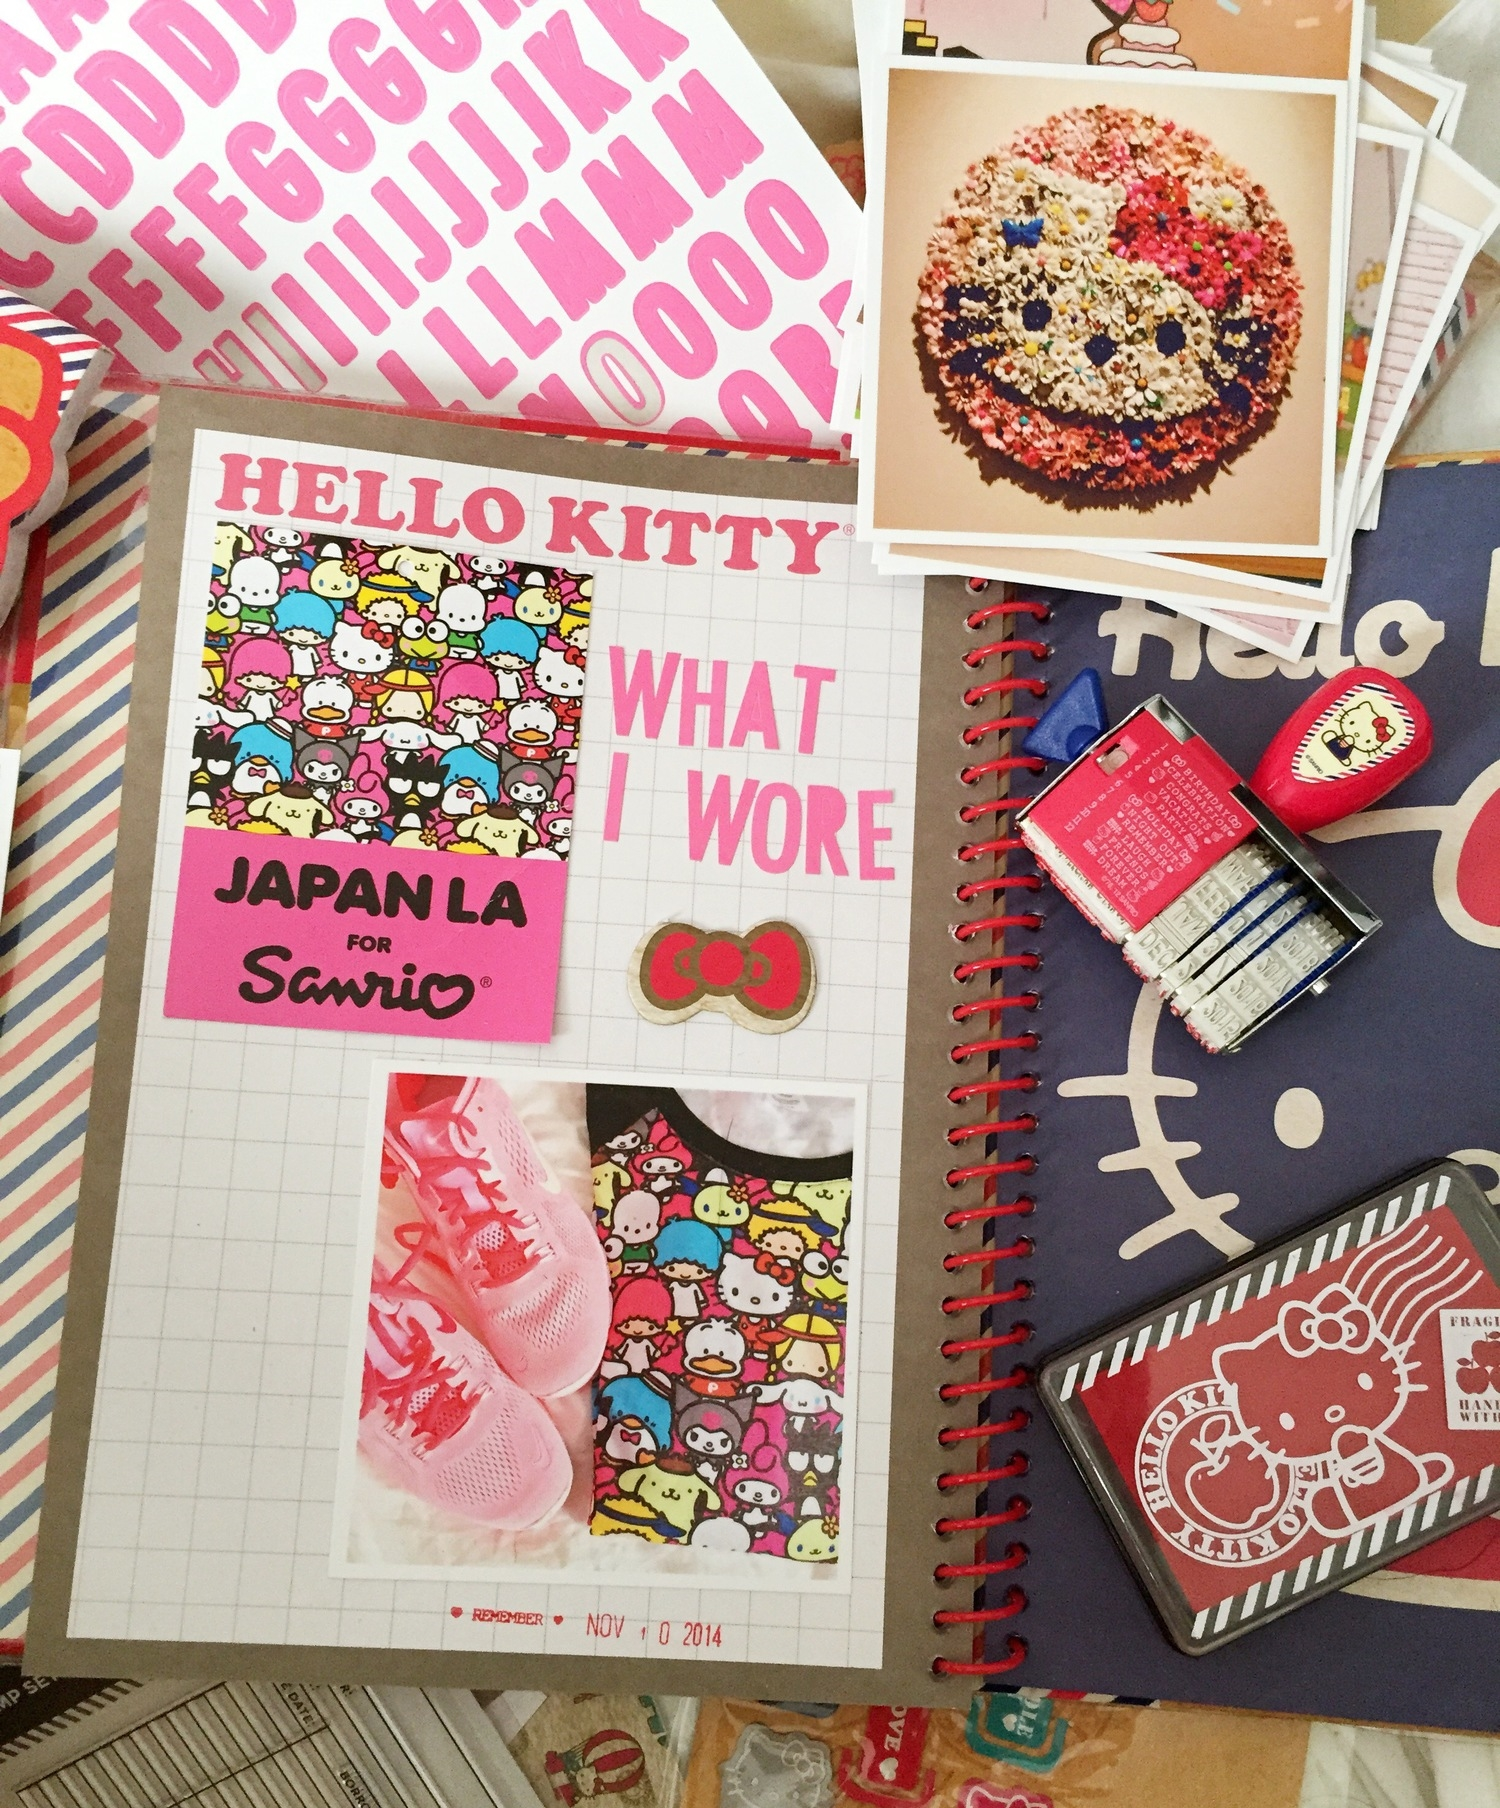 Hello Kitty Con offered scrapbooking work classes and the scrapbook packs were half off, I thought Hello Kitty Con would be a great start to my first scrapbook. Yes, it's sloppy but I had so much fun.Things like saving tags from favorite clothing will no longer make me feel like a hoarder.